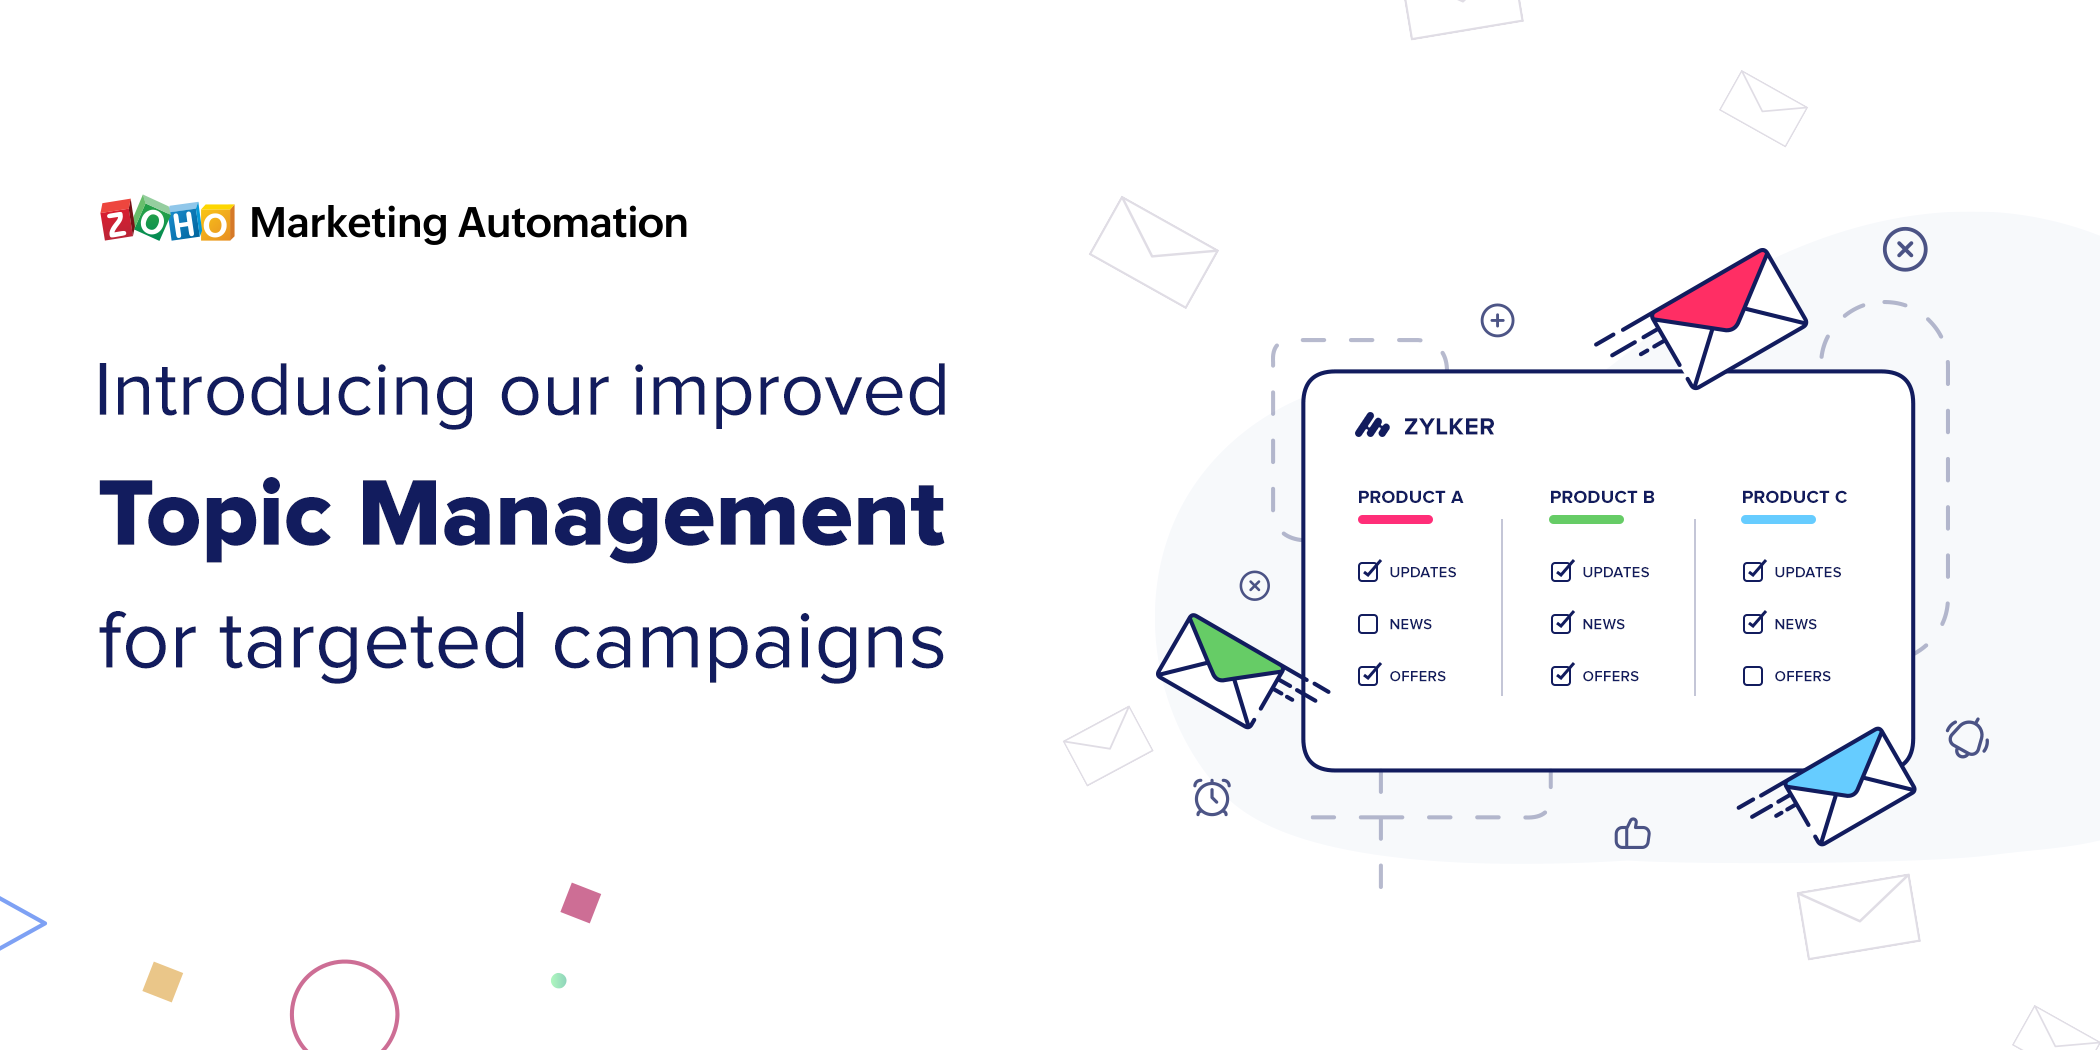 Introducing the improved Topic Management feature for targeted marketing